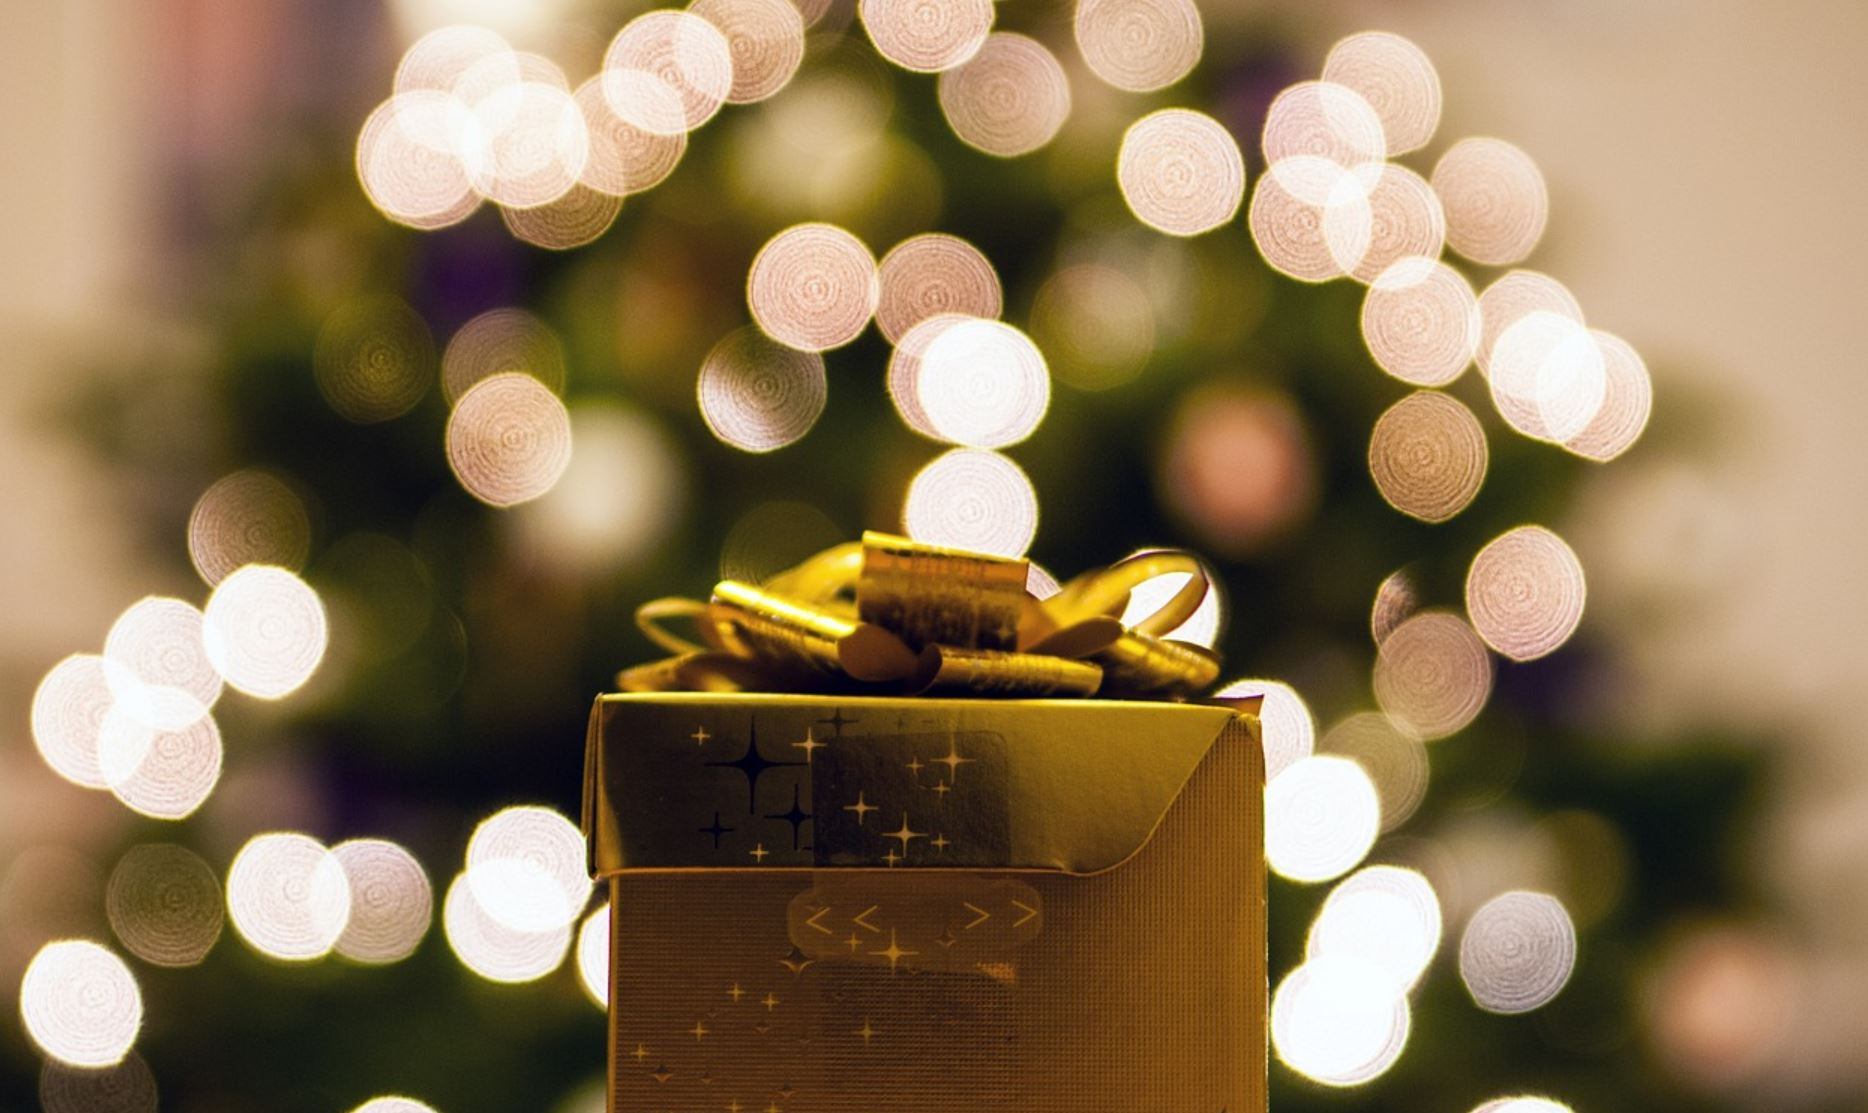 A Very COVID Christmas: Visualizing The Pandemic's Impact On Festive Spending